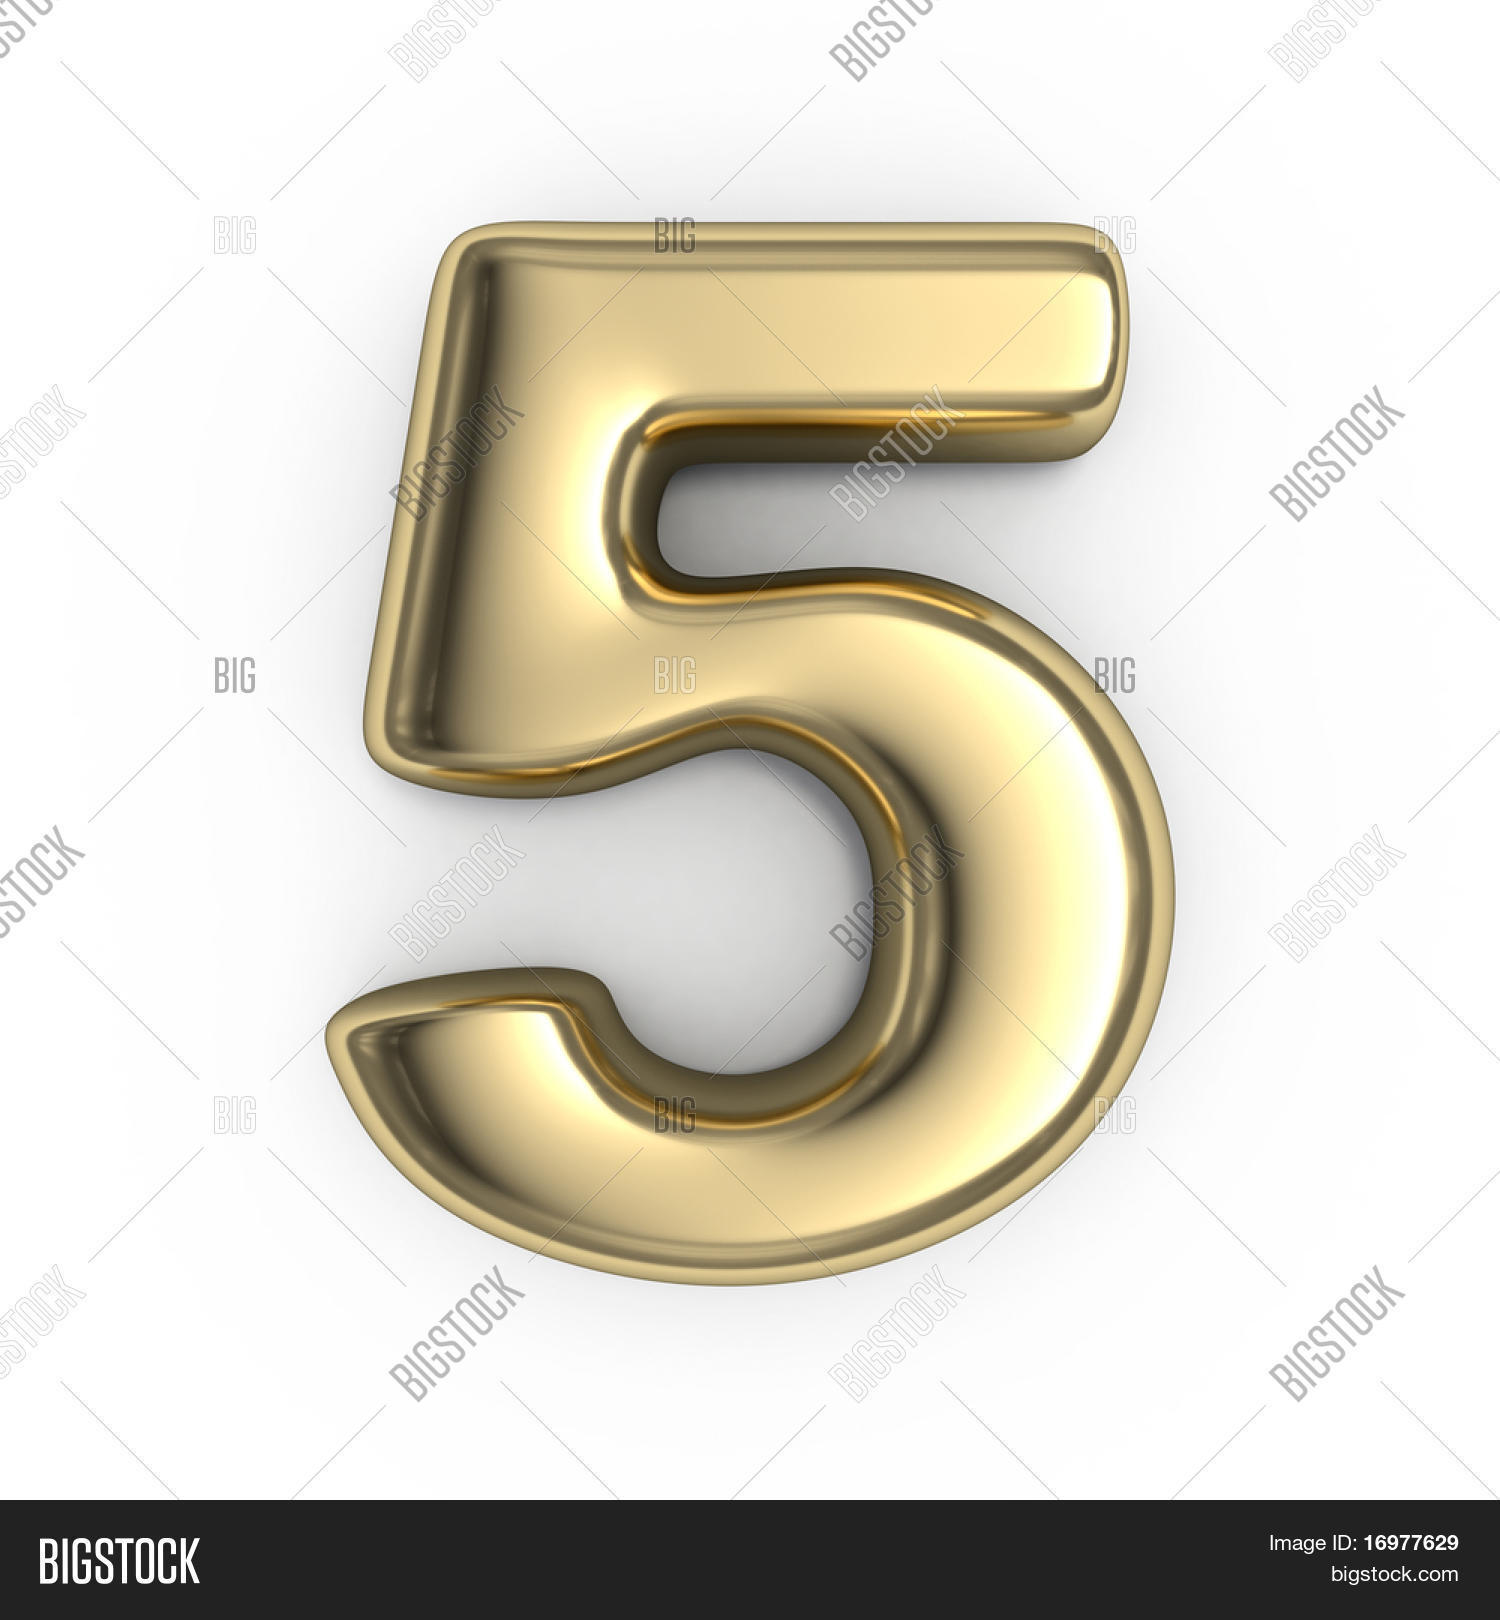 3d gold numbers number 5 image photo bigstock for Large 3d numbers